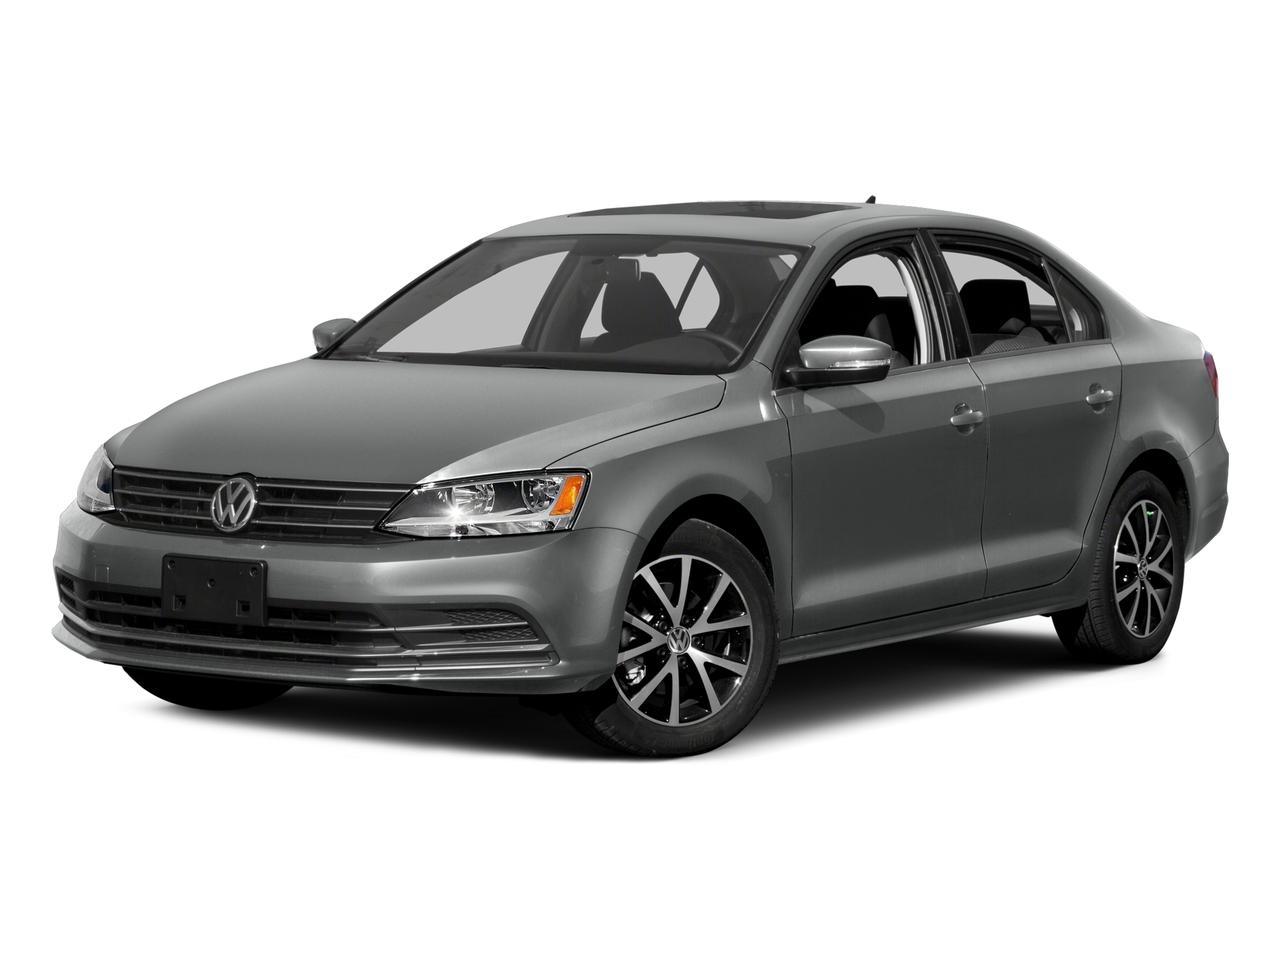 2016 Volkswagen Jetta Sedan Vehicle Photo in San Antonio, TX 78257